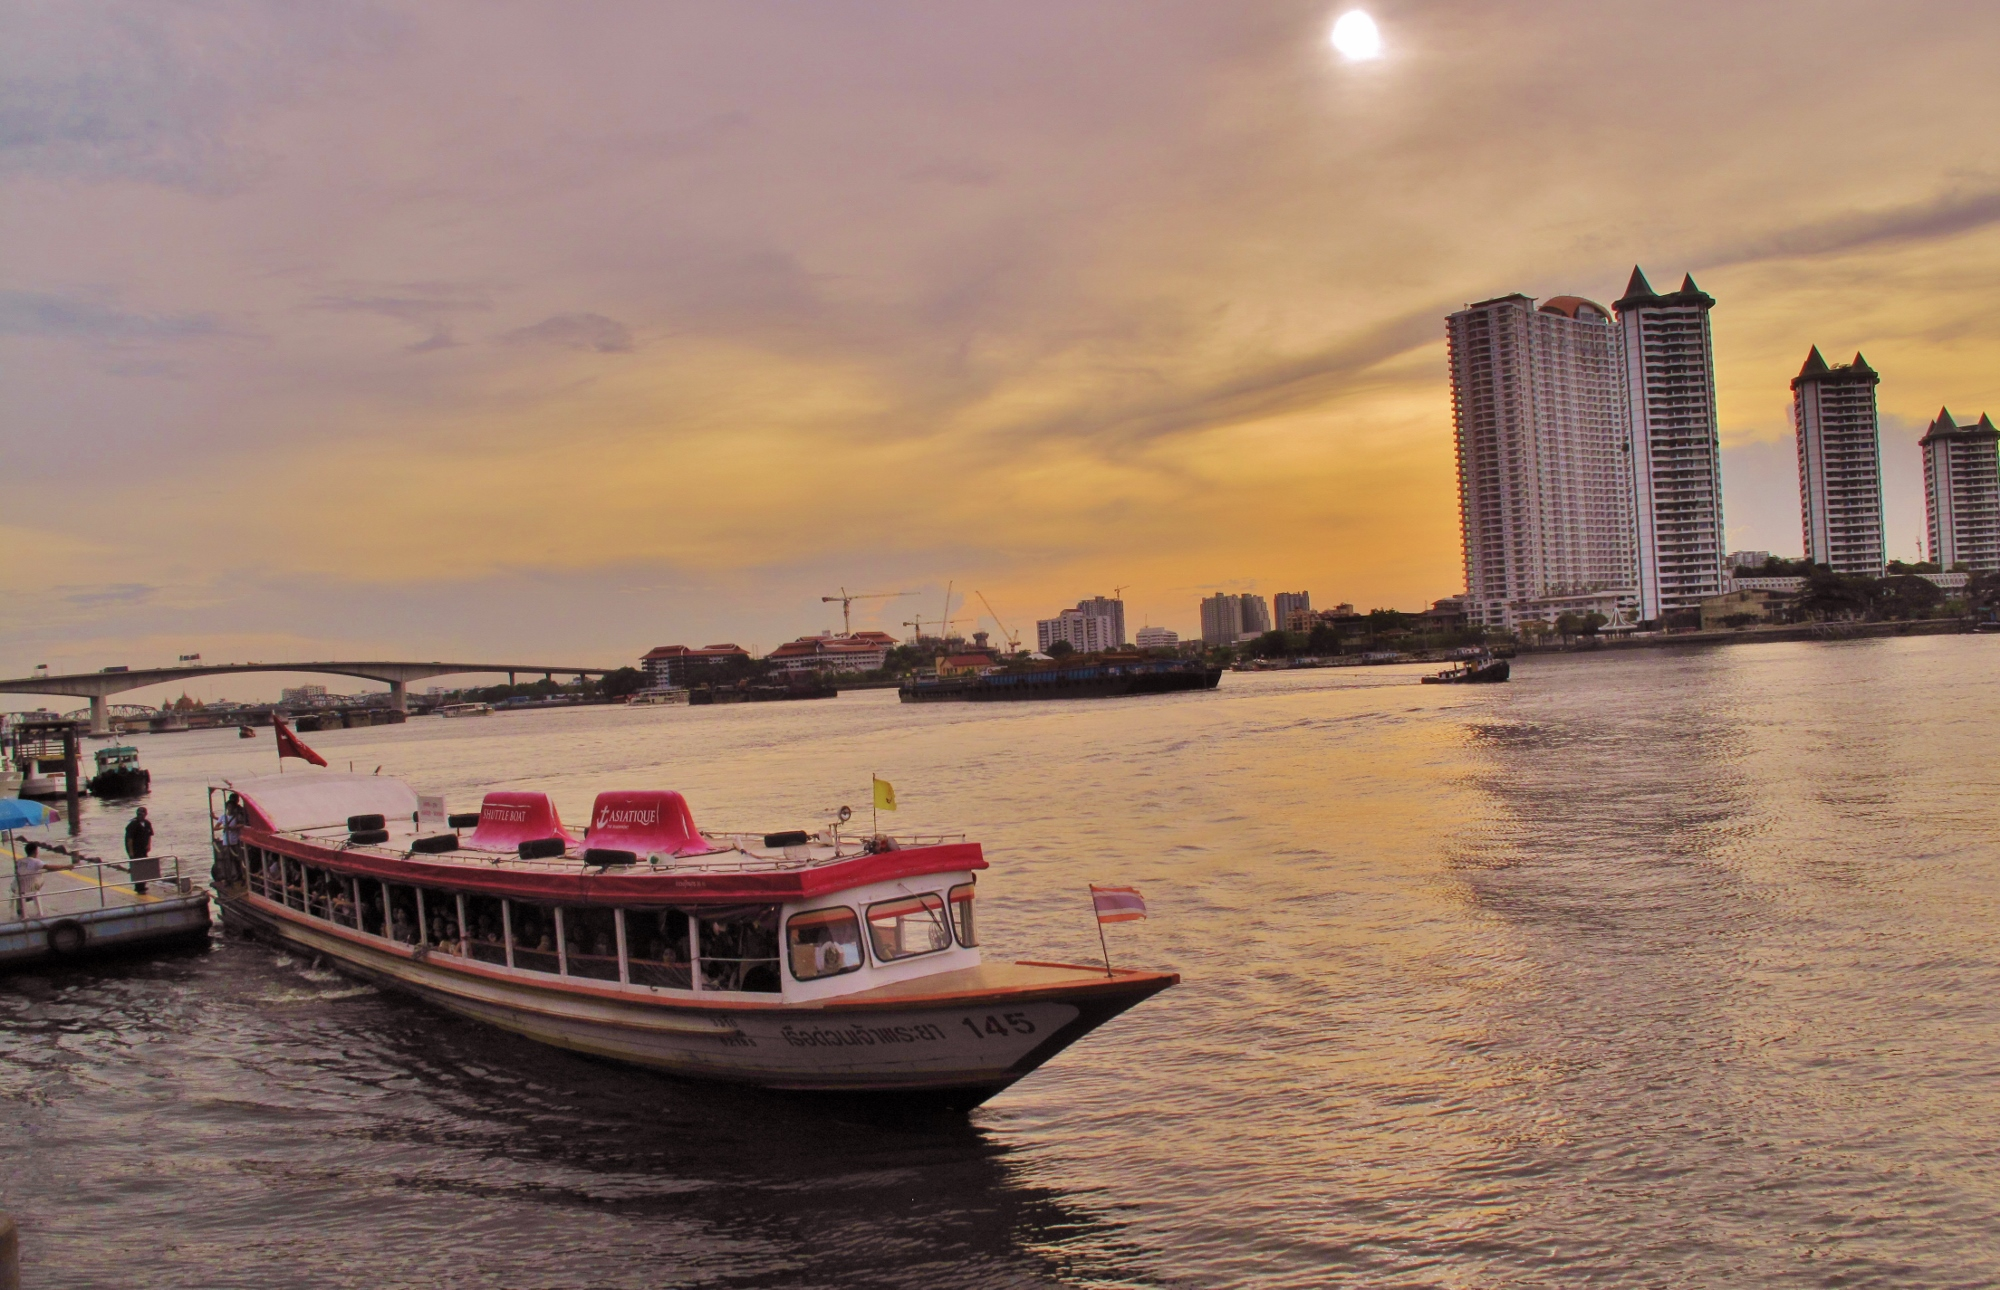 This shuttle boat is what you should be looking for.